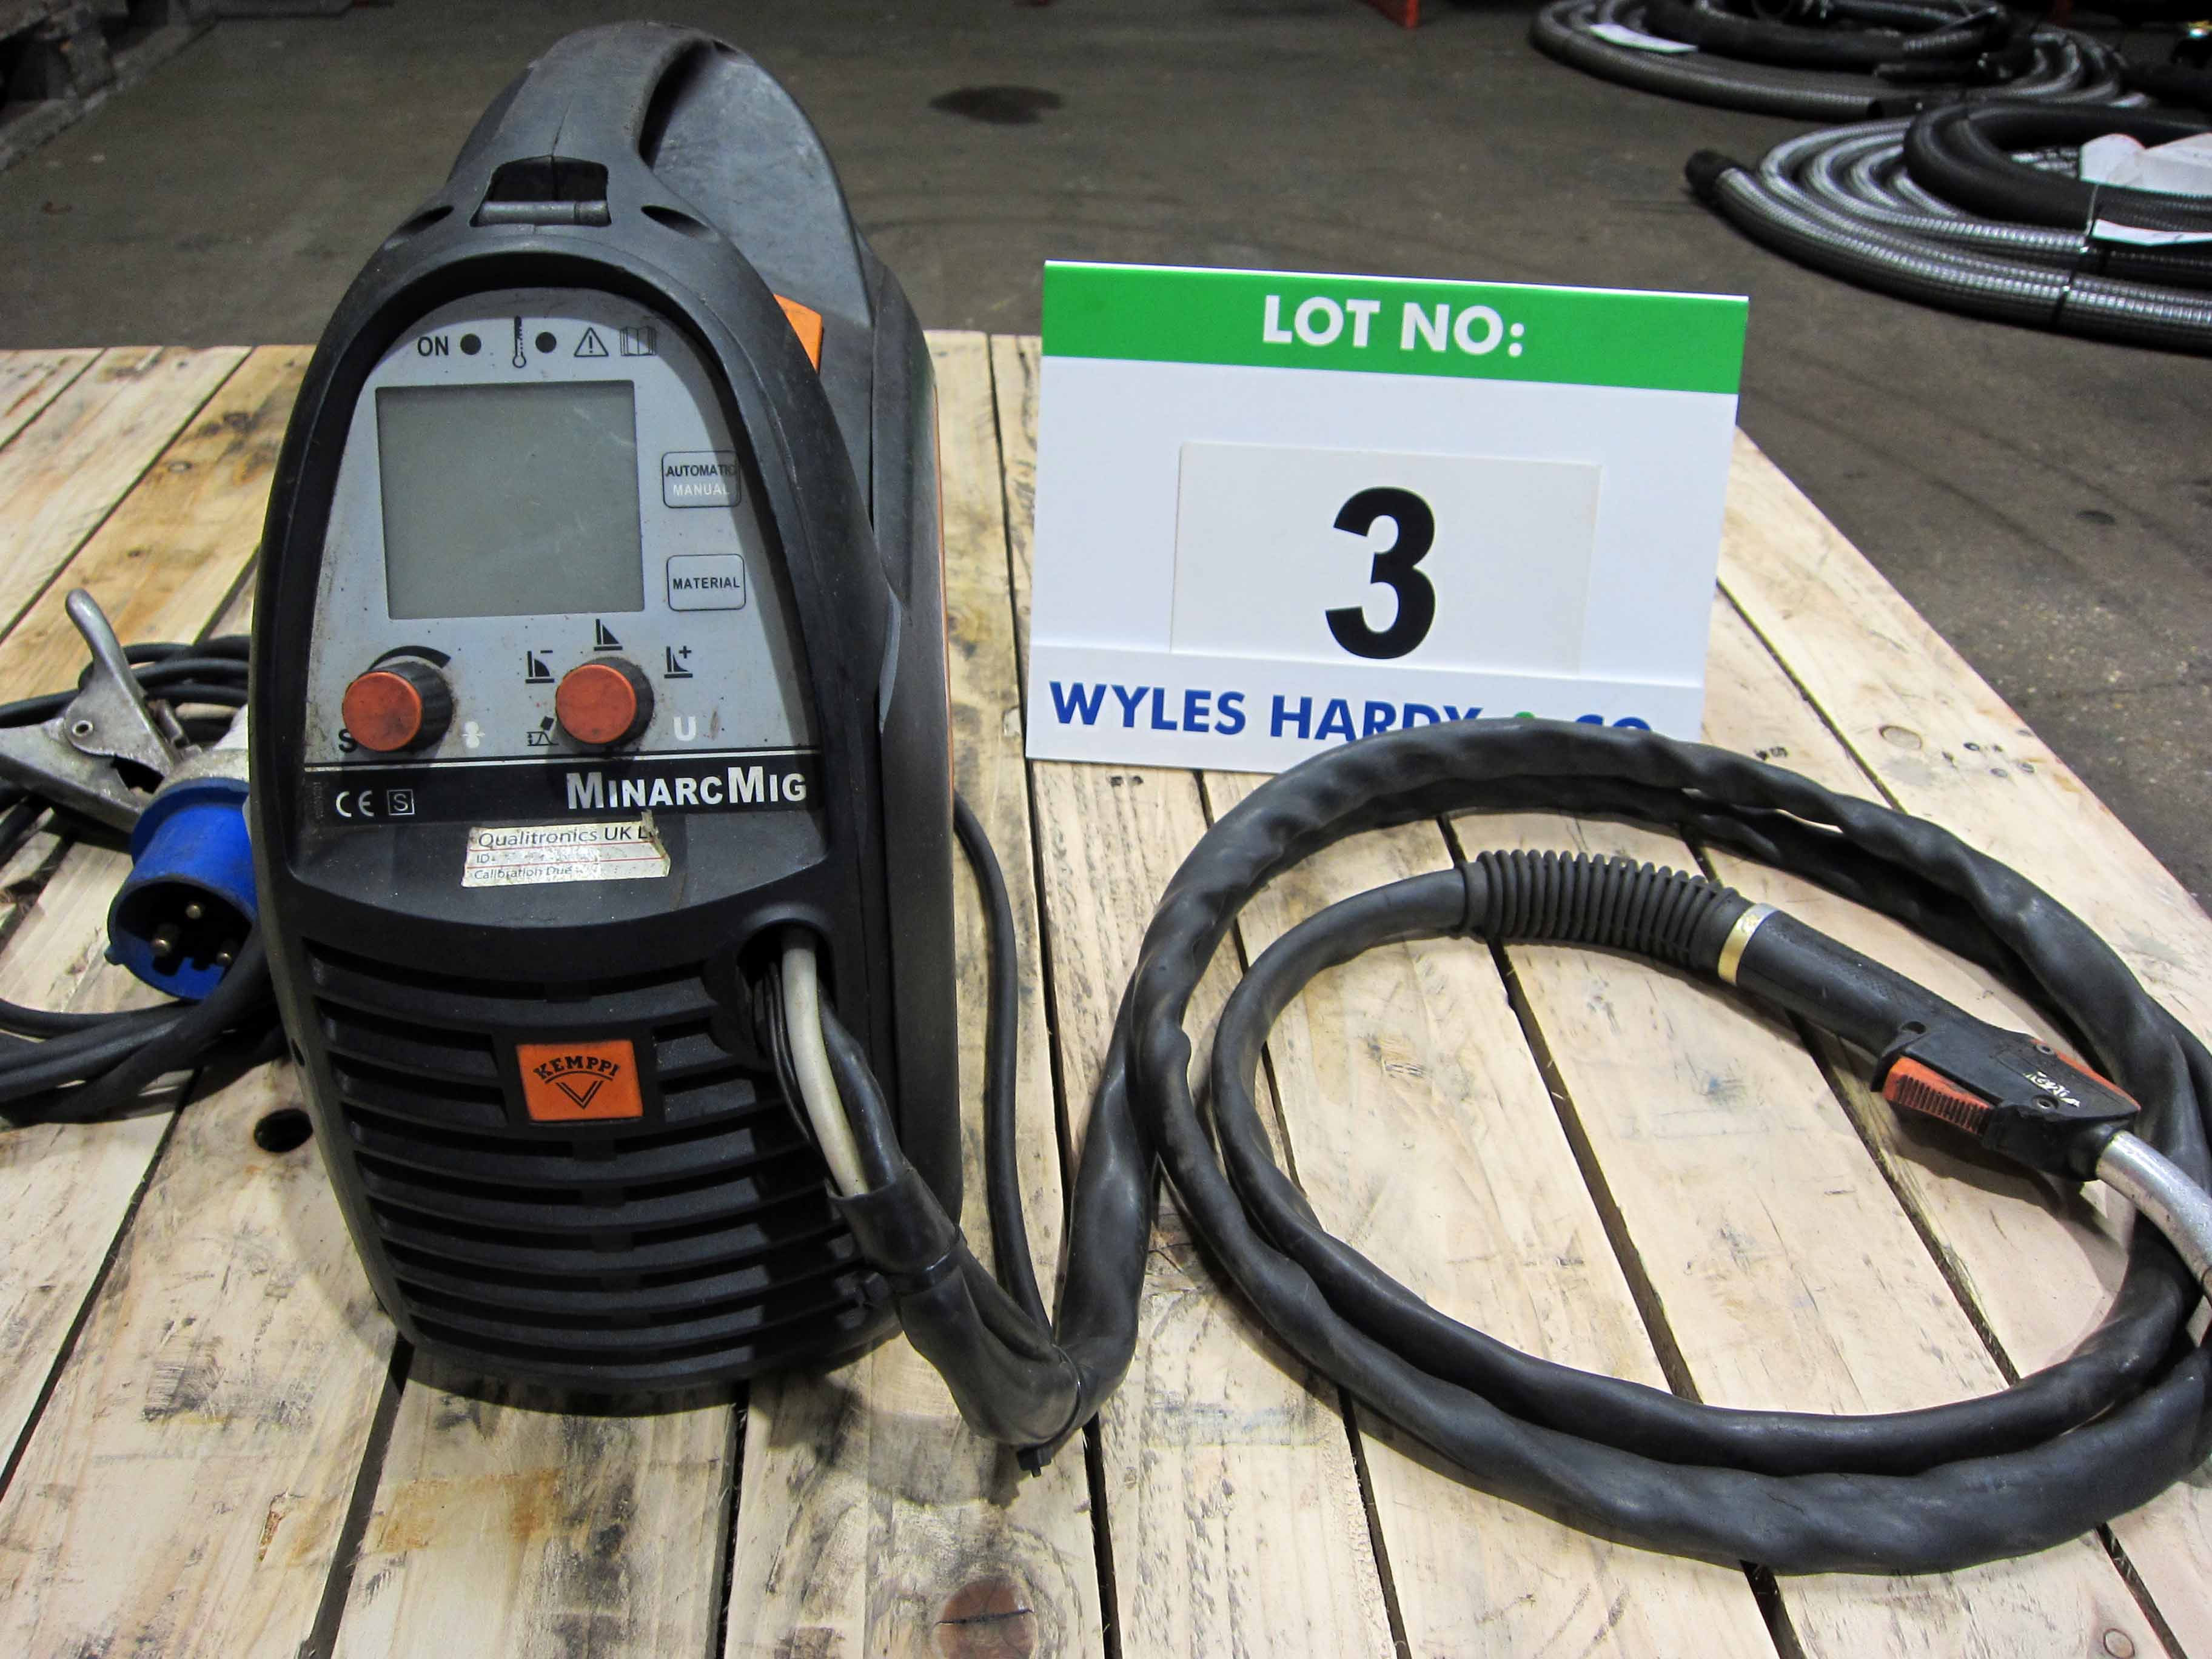 A KEMPPI MinArc Mig Model Adaptive 180 240V Portable Mig Welder complete with Gun and Earth Lead (